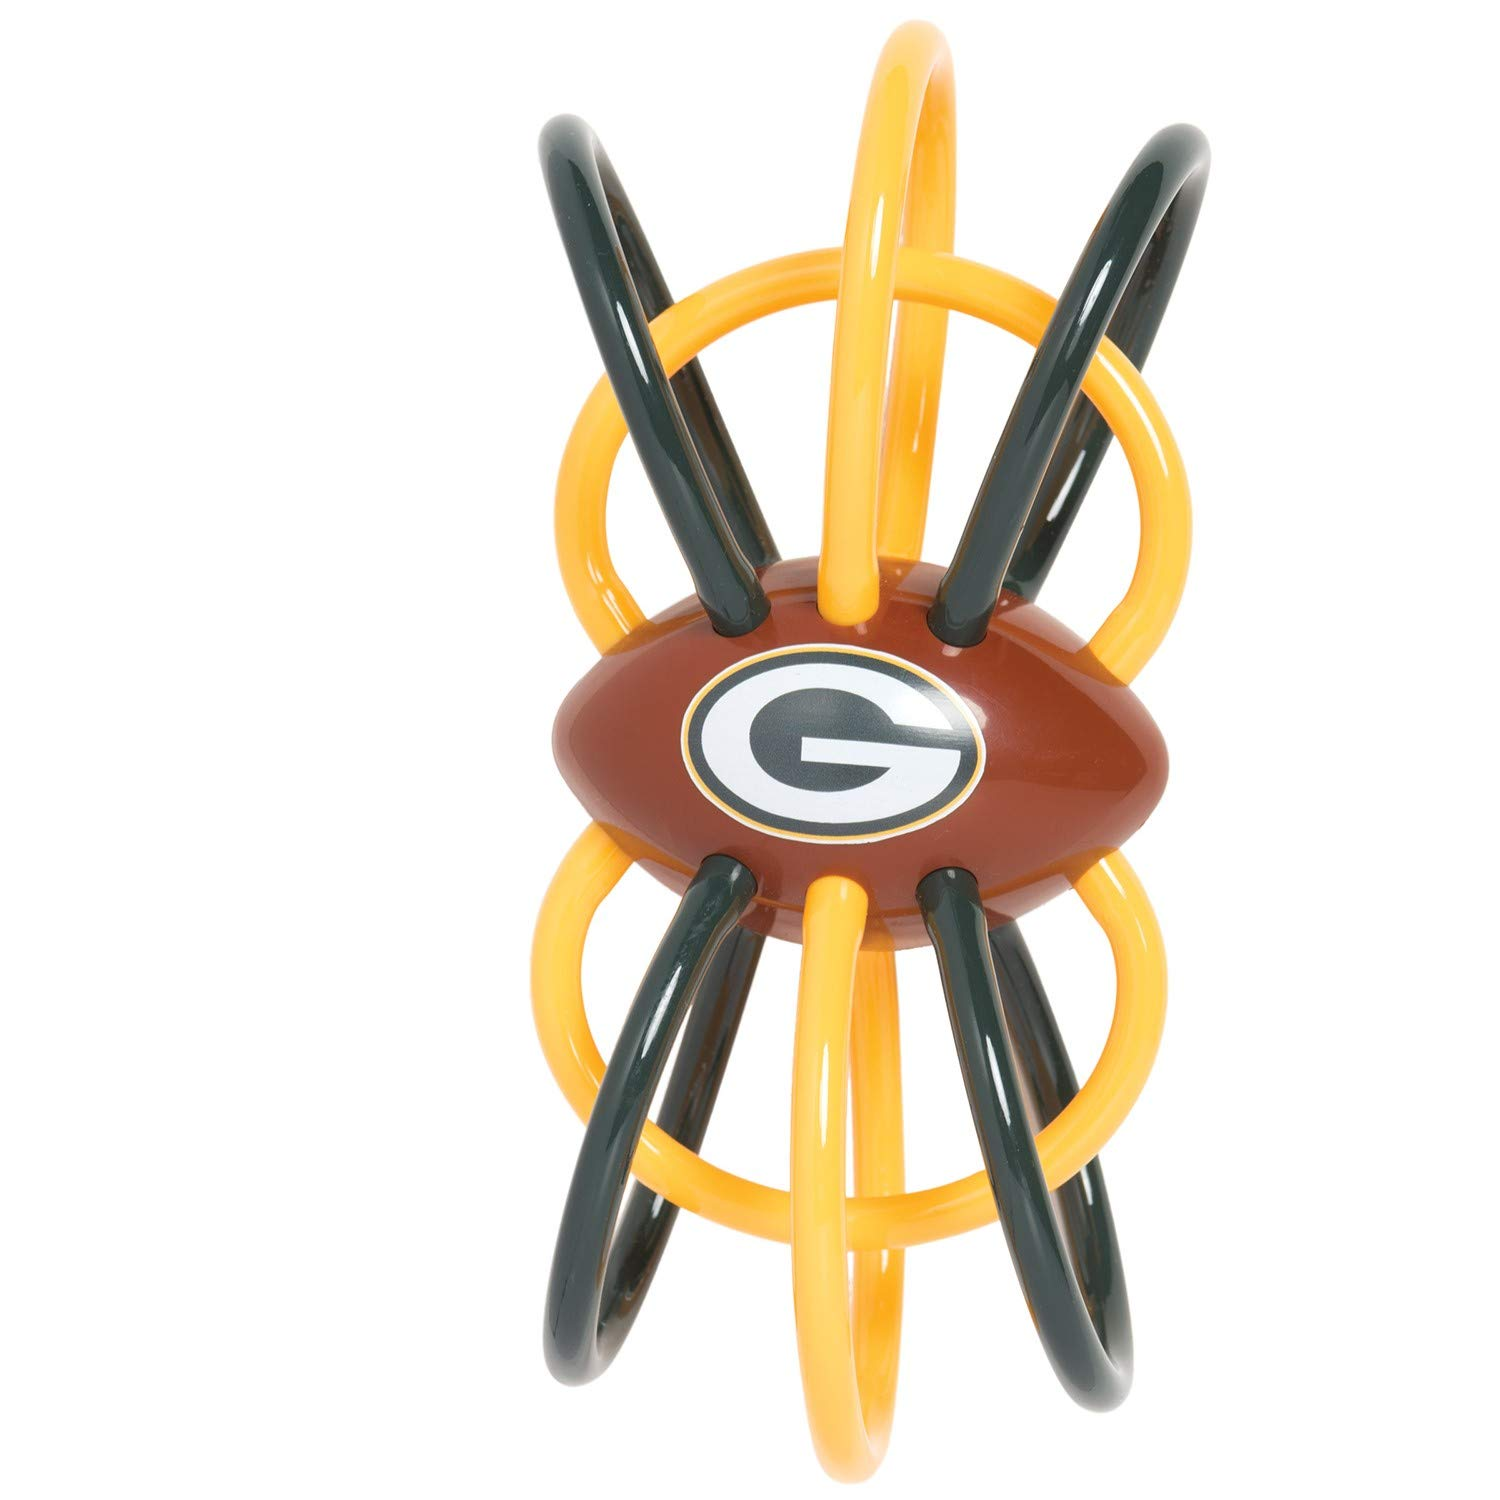 Baby Fanatic Green Bay Packers Winkel Rattle Teether Officially Licensed NFL Baby Toy